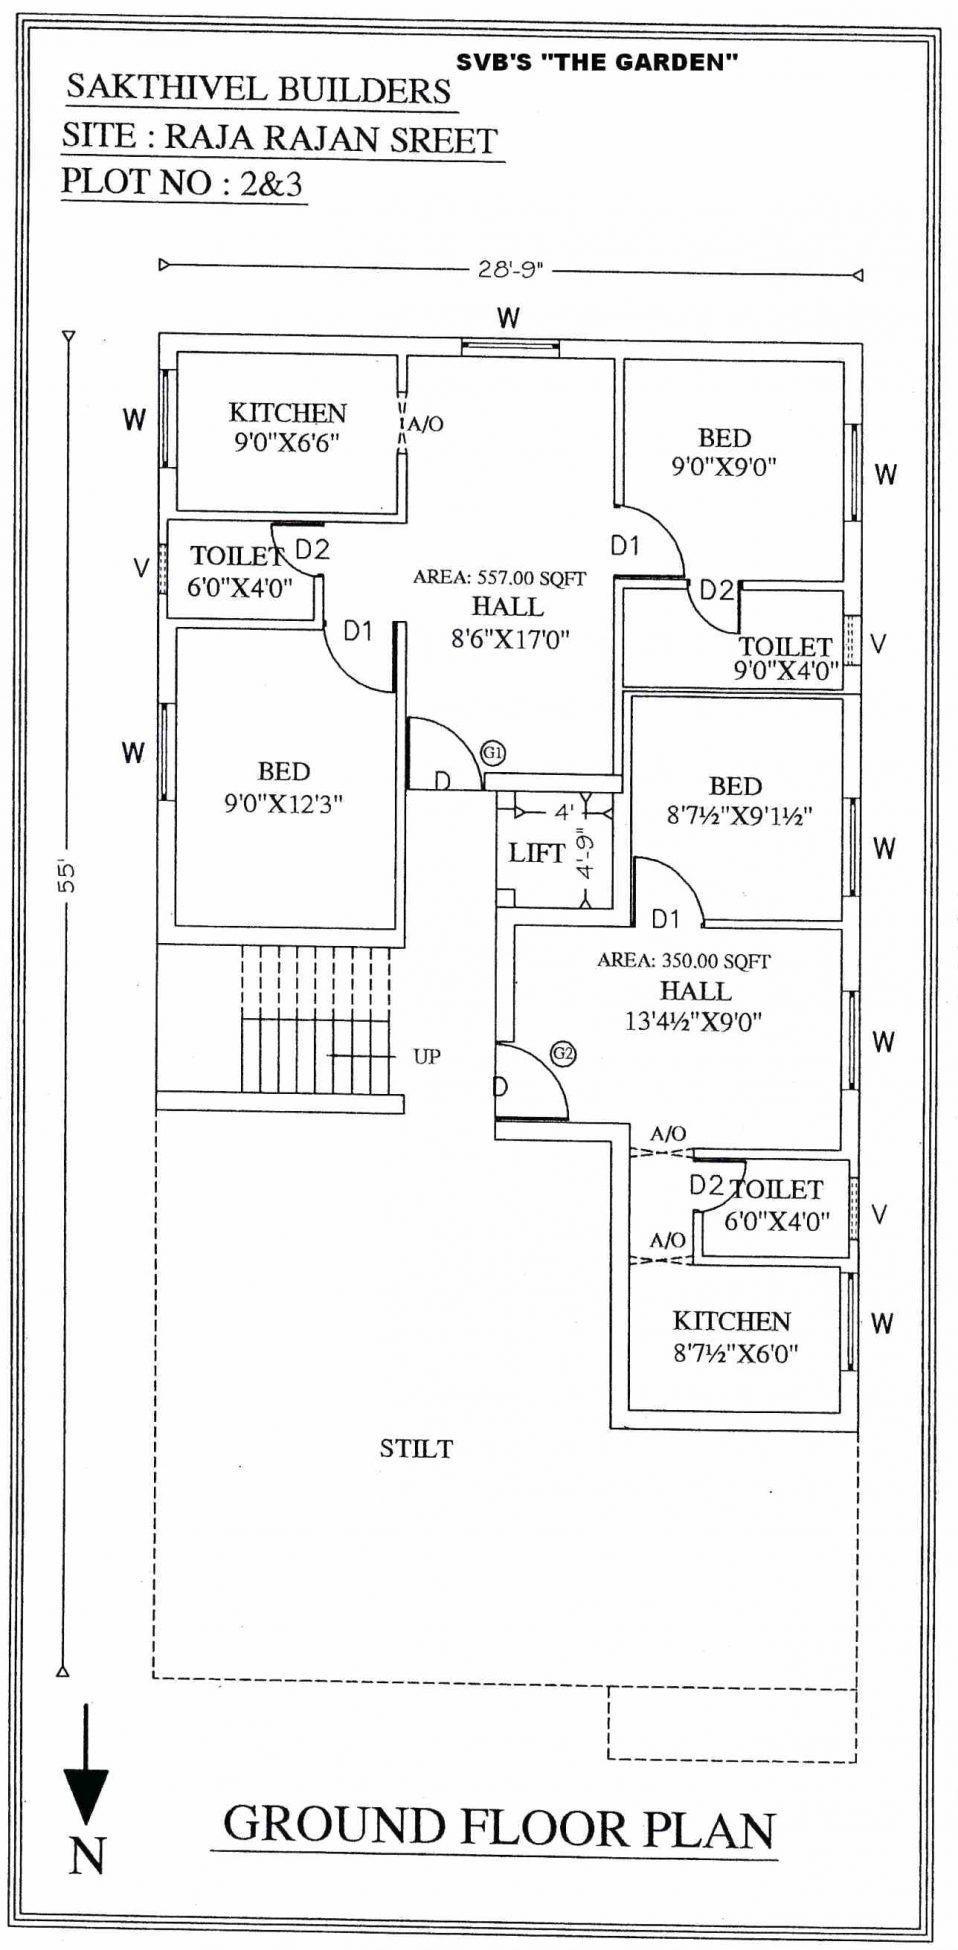 online room drawing tool floor plan layout posts for fascinating landscaping house planner ideas logistics plans landscape 958x1950